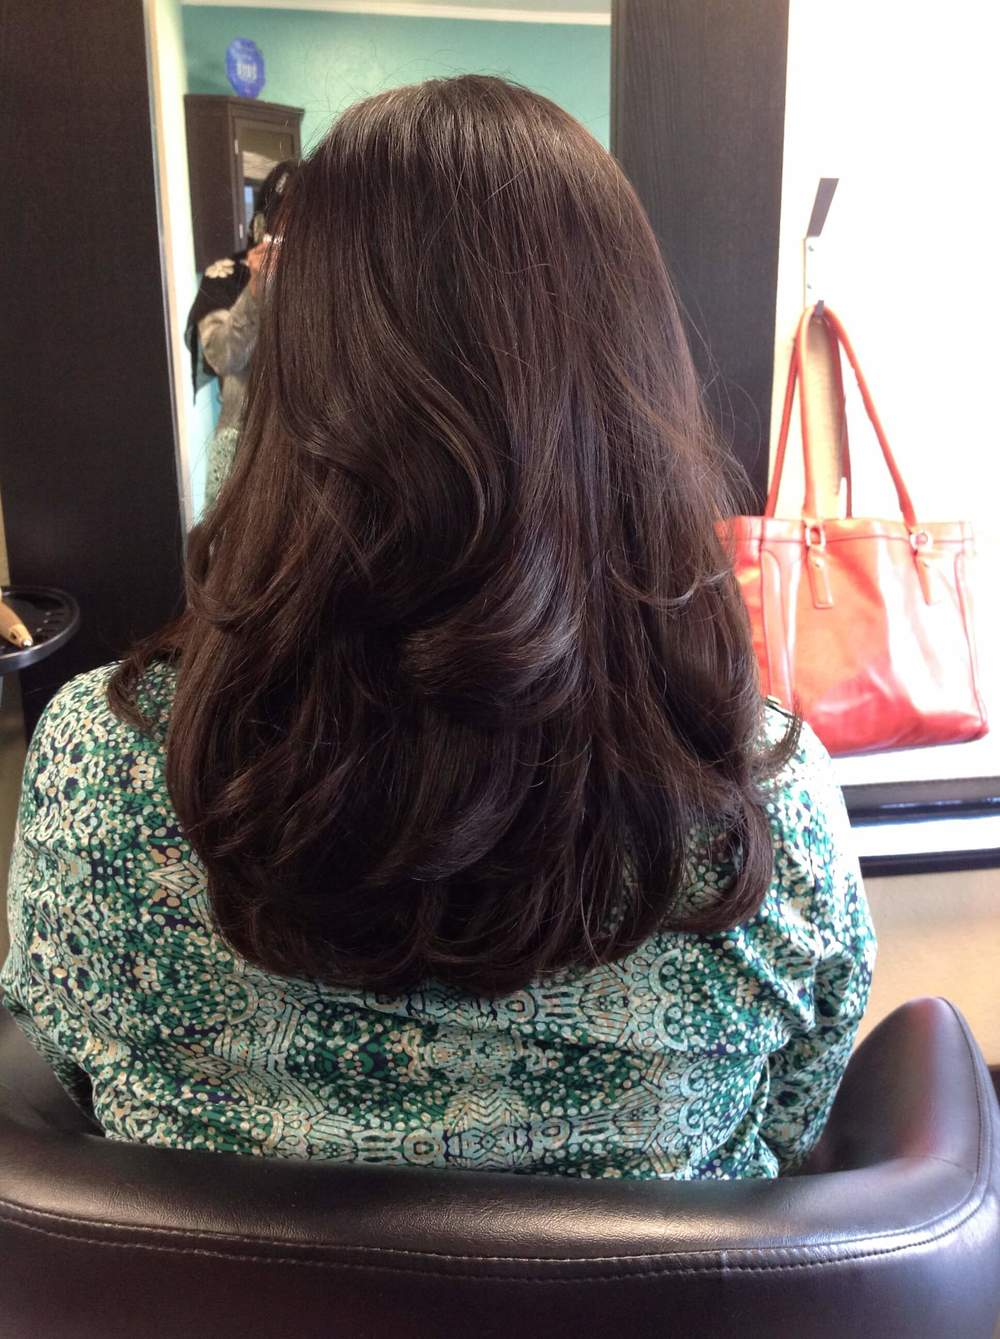 Layered Haircut and Blowdry